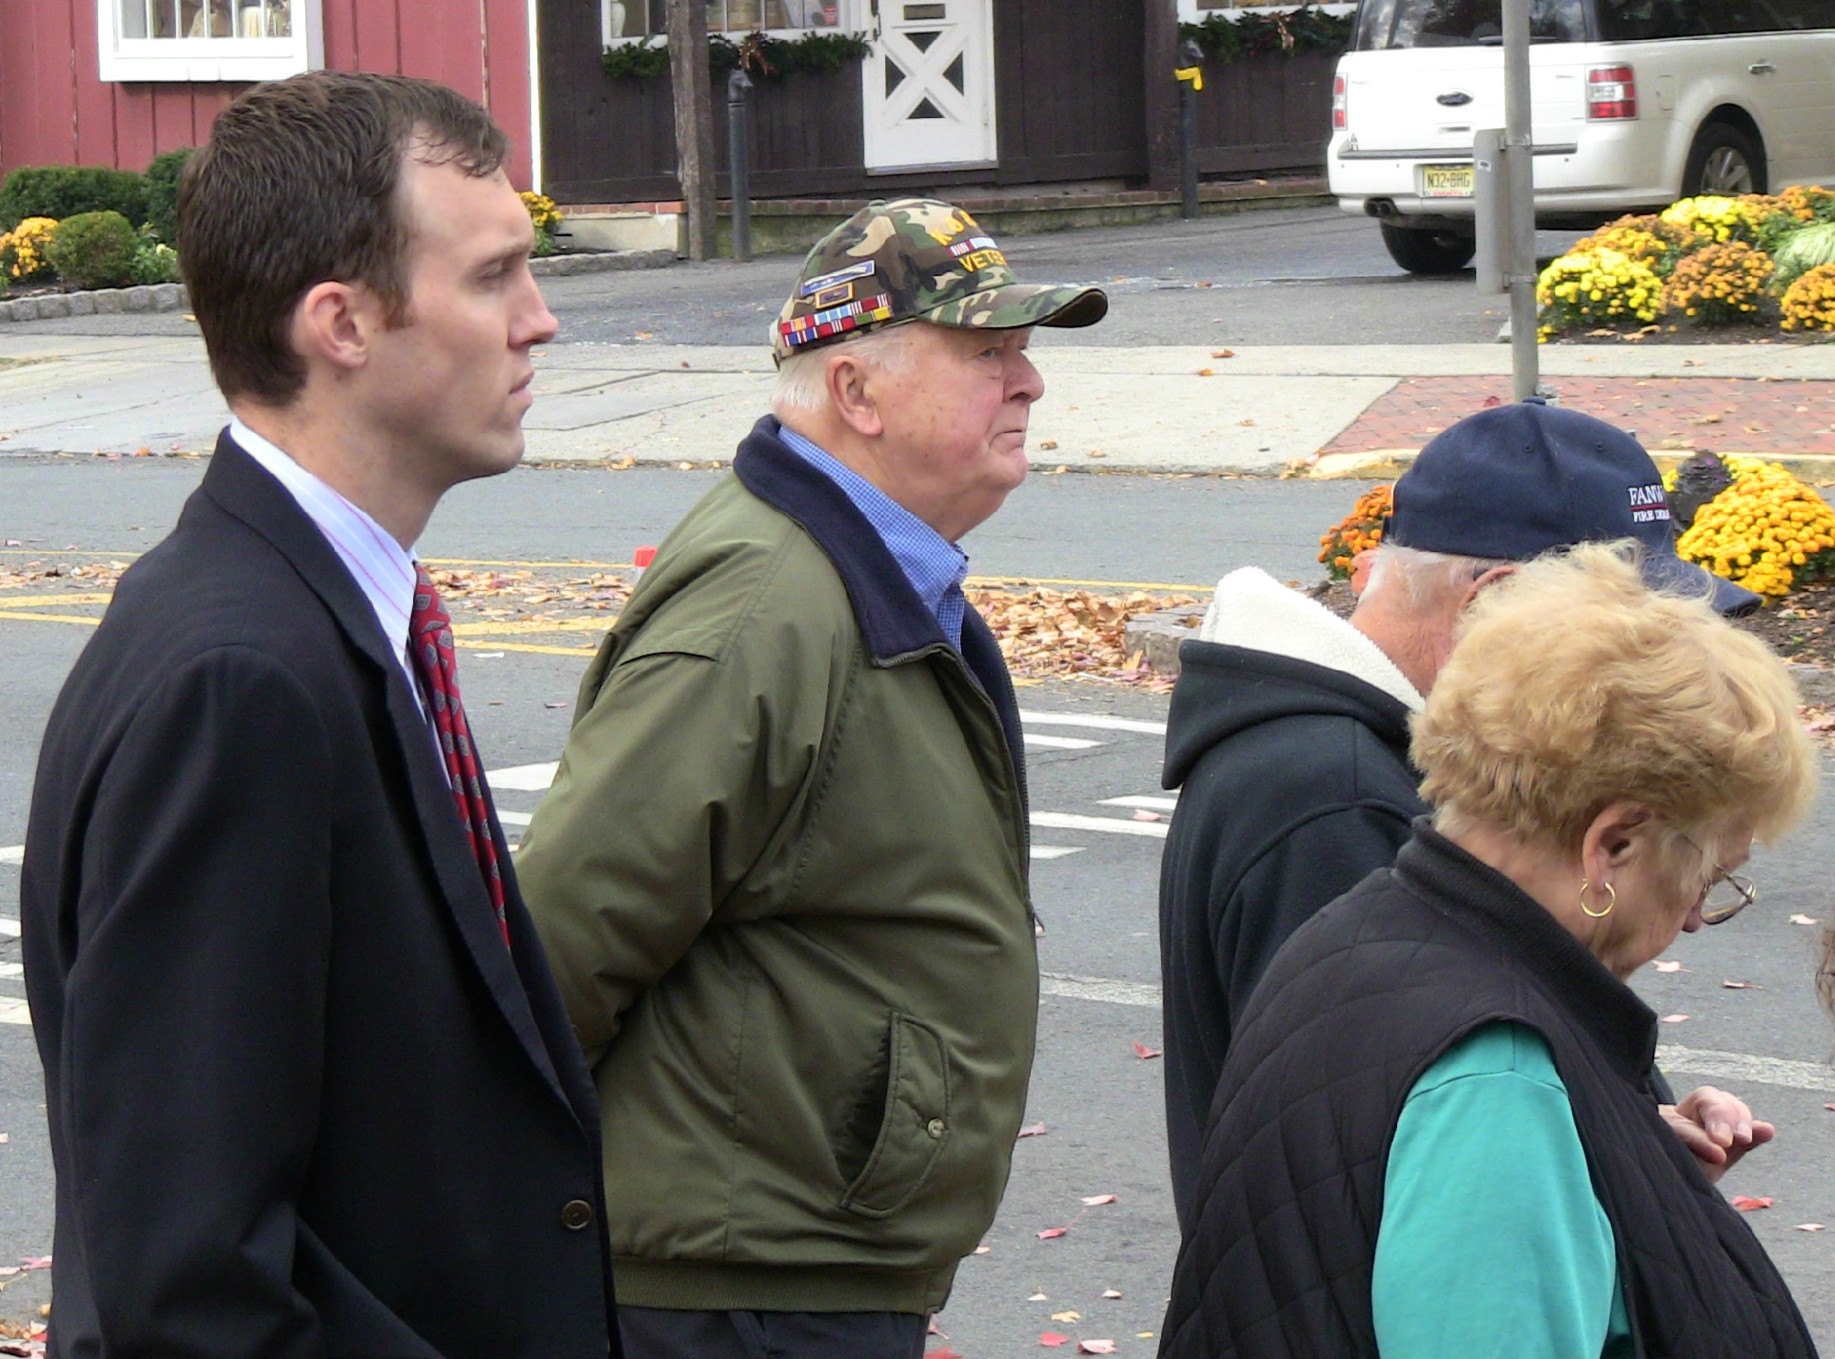 0d02984198b3c45d5c9e_Councilman_Llewellyn_Jomes_at_the_Veterans_Day_ceremony_in_Scotch_Plains.JPG